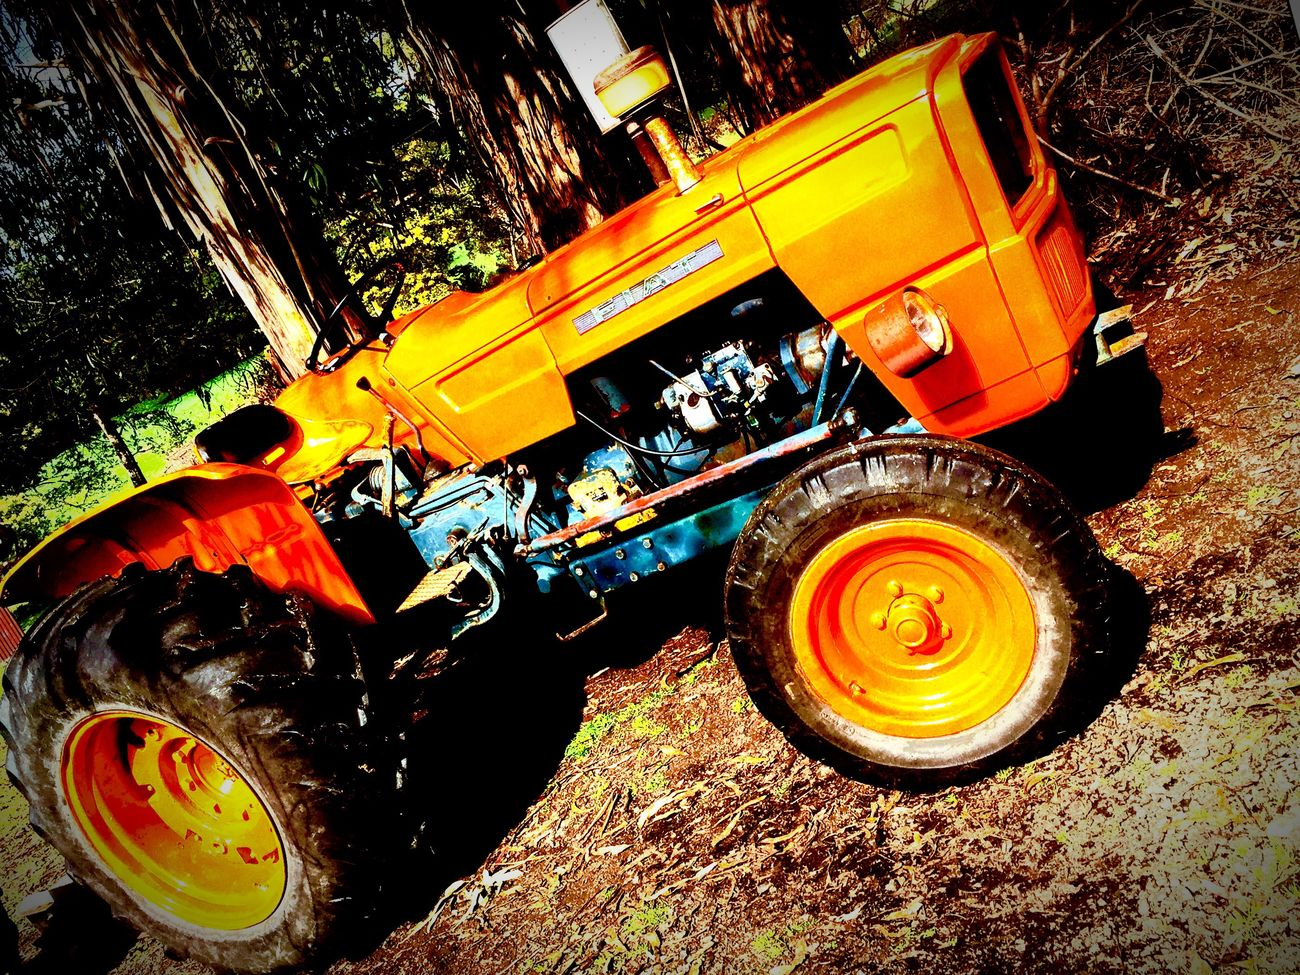 My Dads tractor